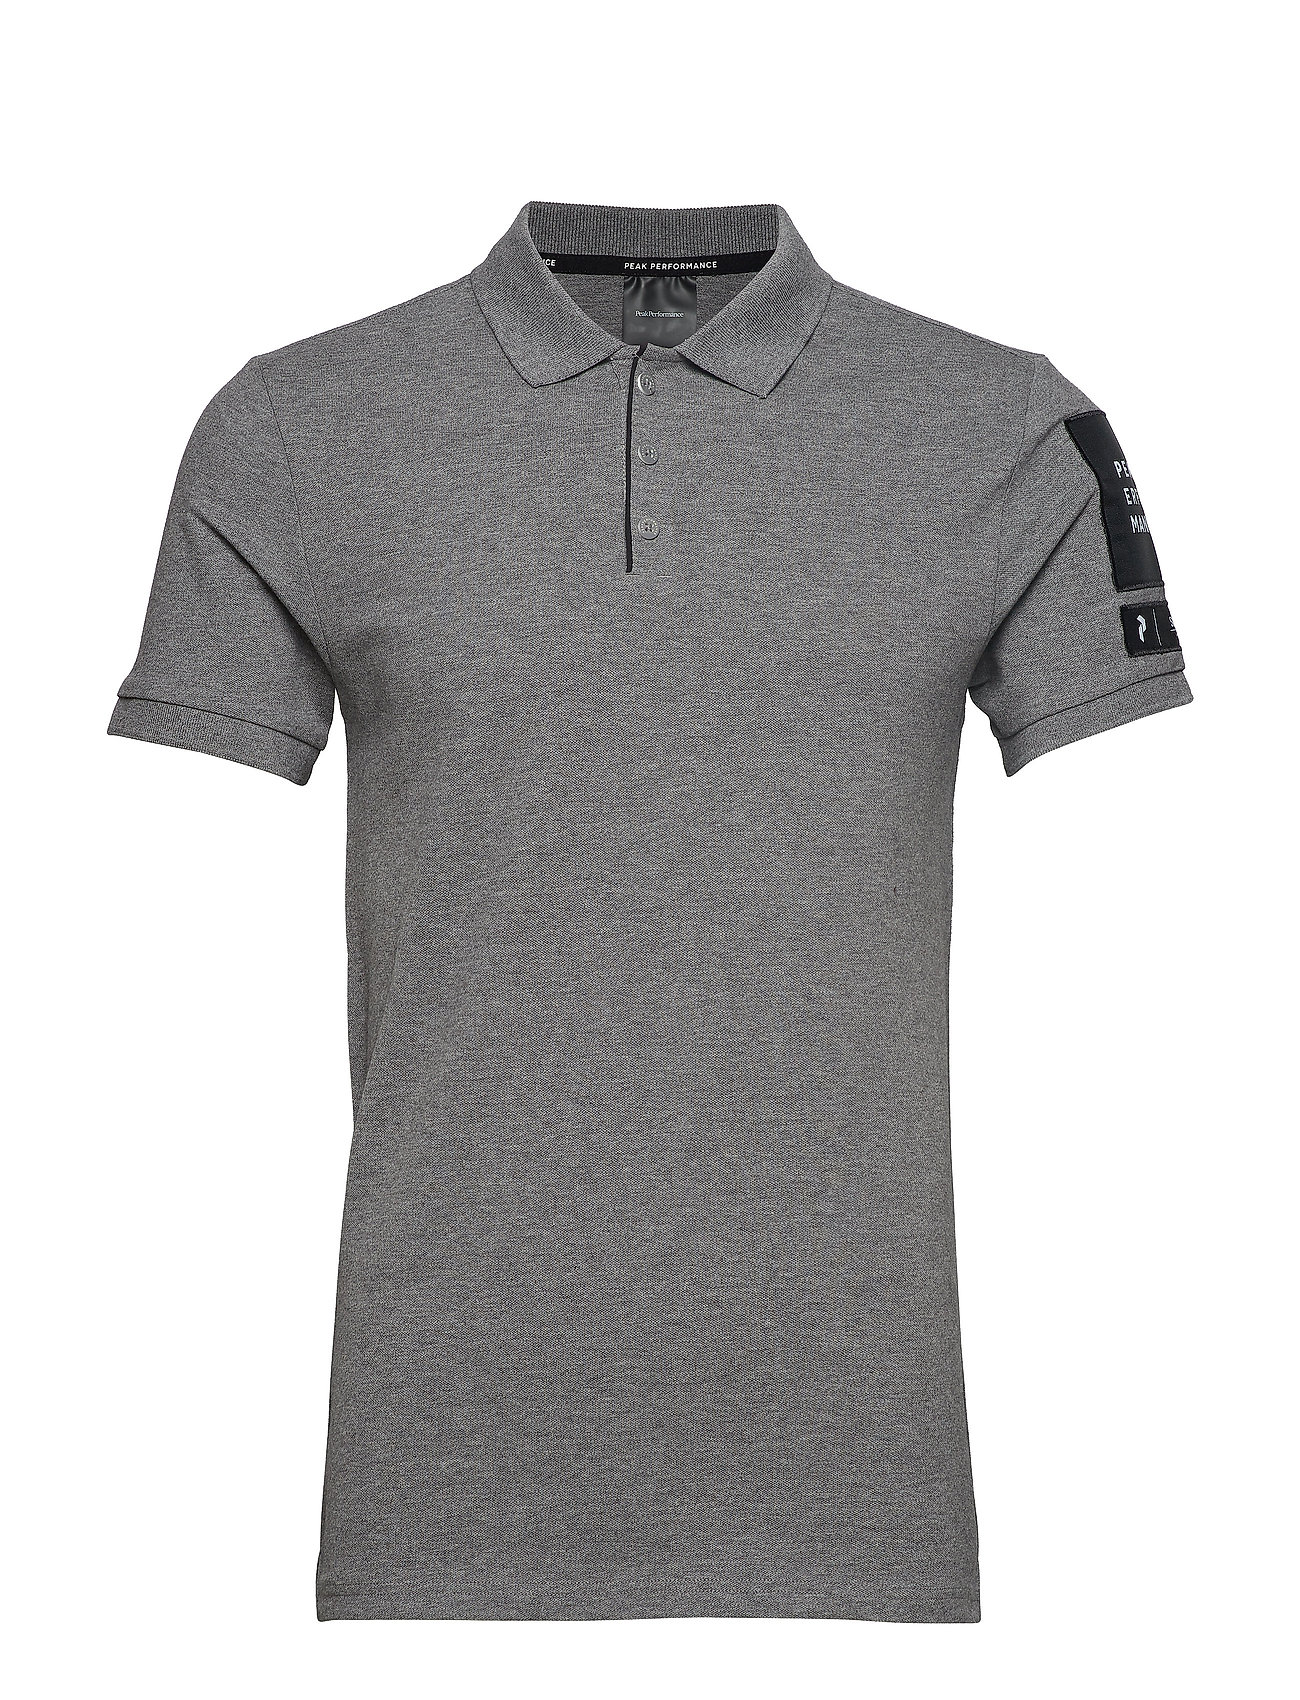 Peak Performance TECH. PIQ - GREY MELANGE